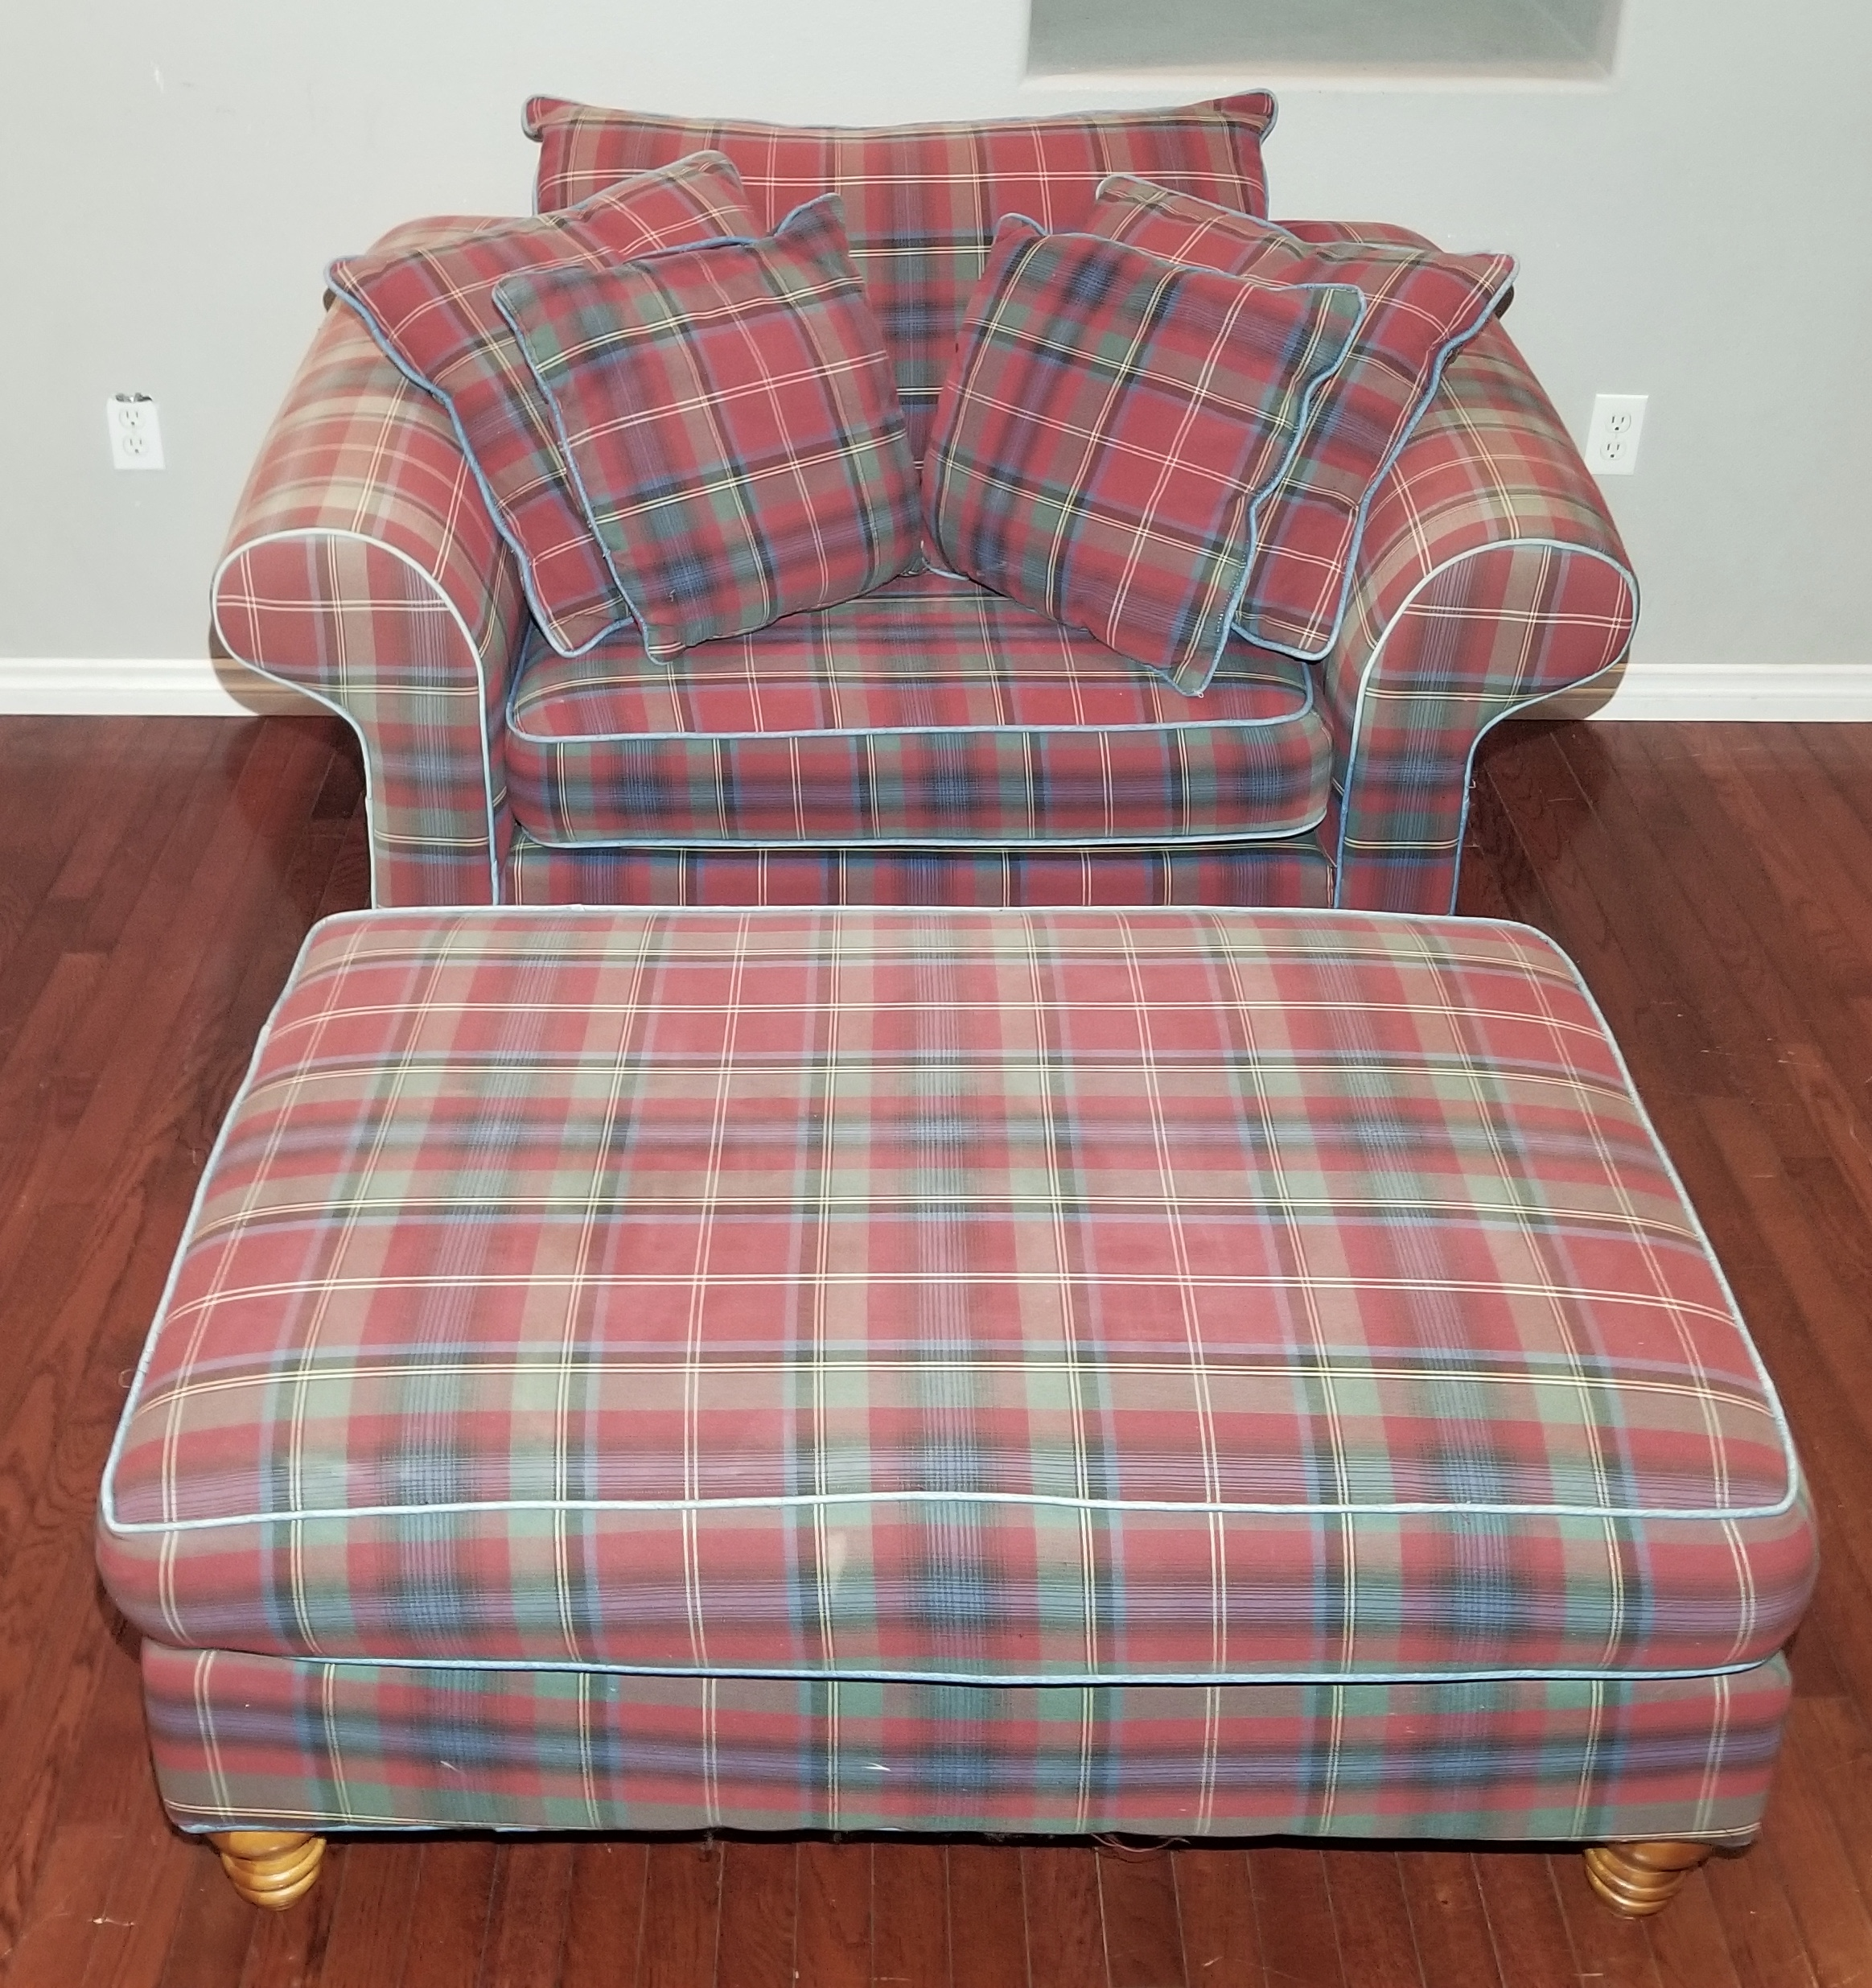 Pleasant Cha26 Red Green Plaid Mix Polyester Oversized Armchair And Matching Ottoman Inzonedesignstudio Interior Chair Design Inzonedesignstudiocom